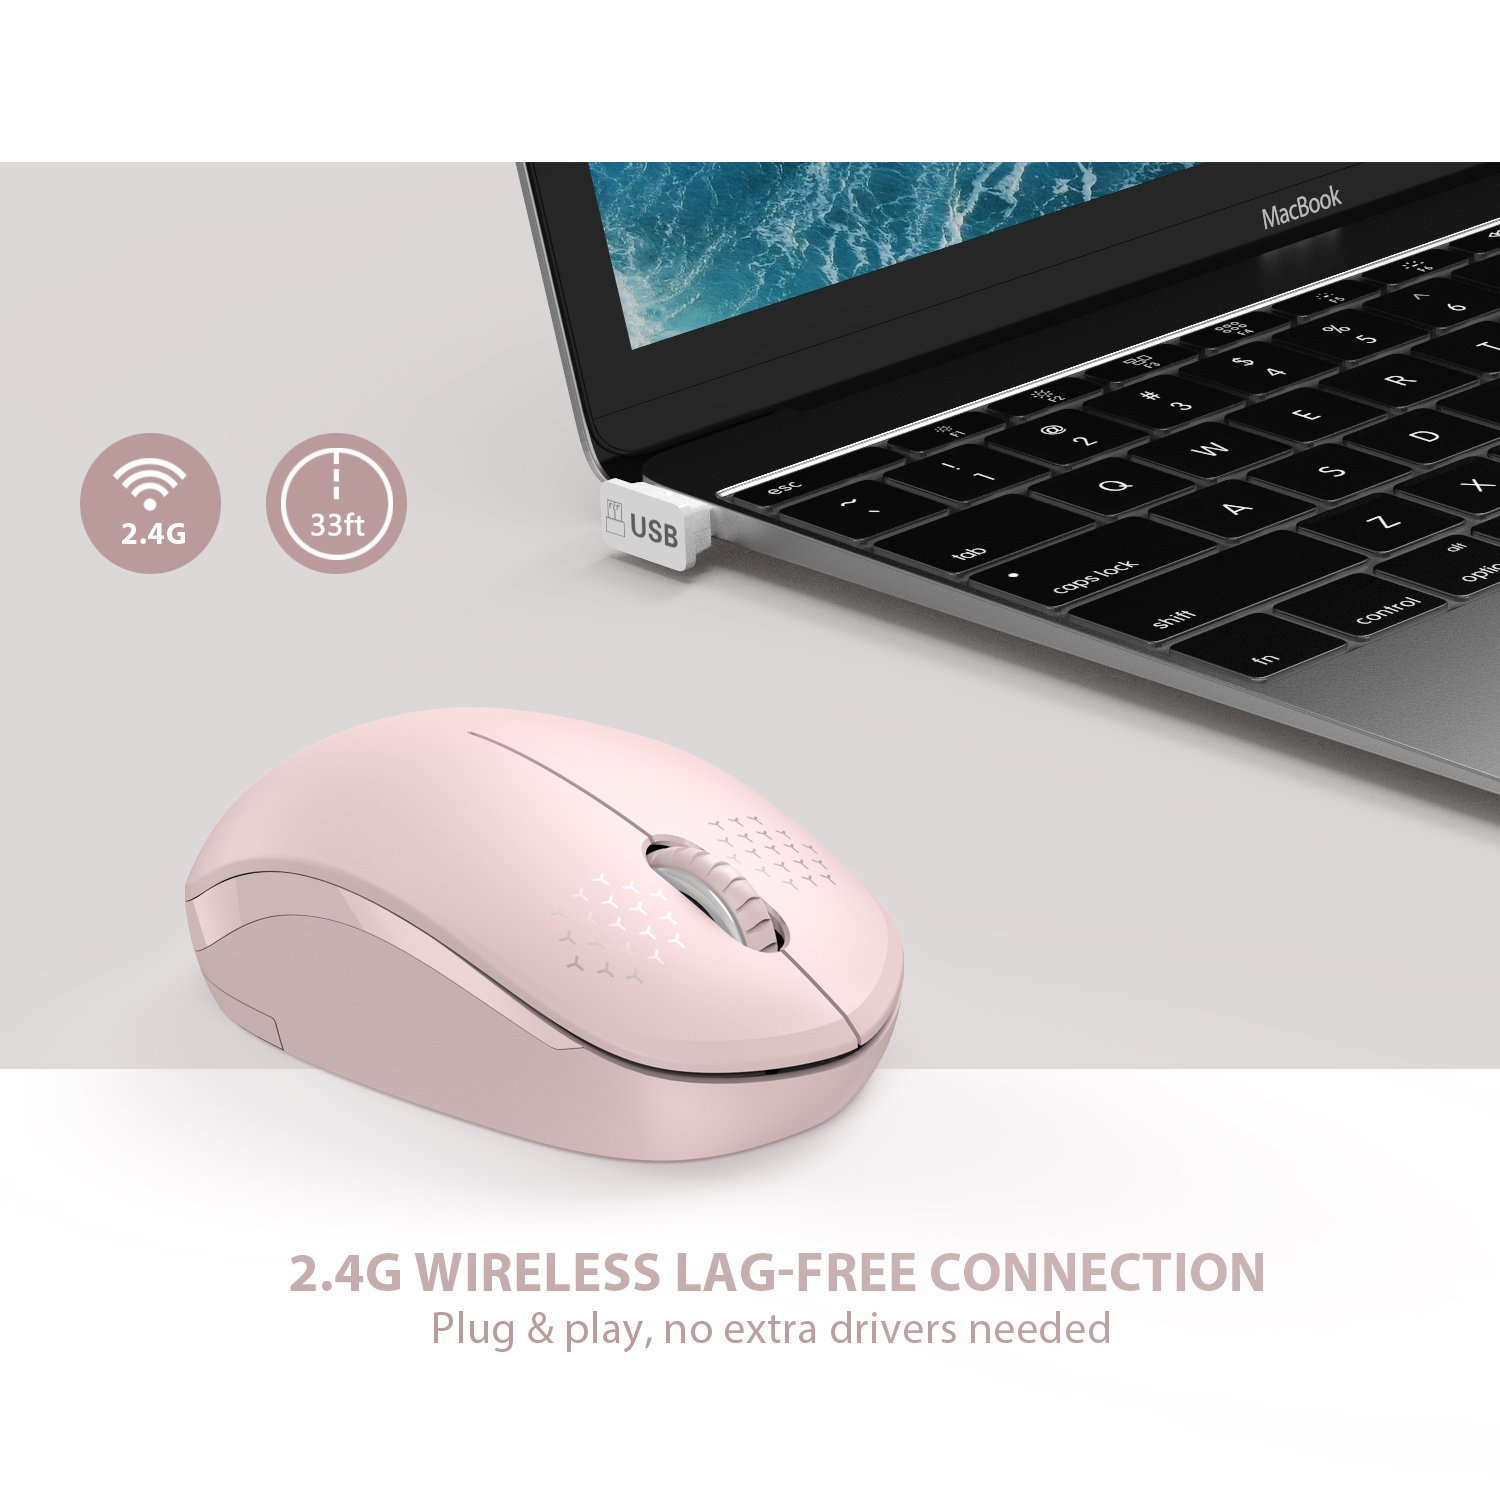 Seenda Wireless Mouse with Nano USB Receiver Noiseless 2.4G Wireless Mouse Portable Optical Mice for Notebook Laptop Purple Computer PC